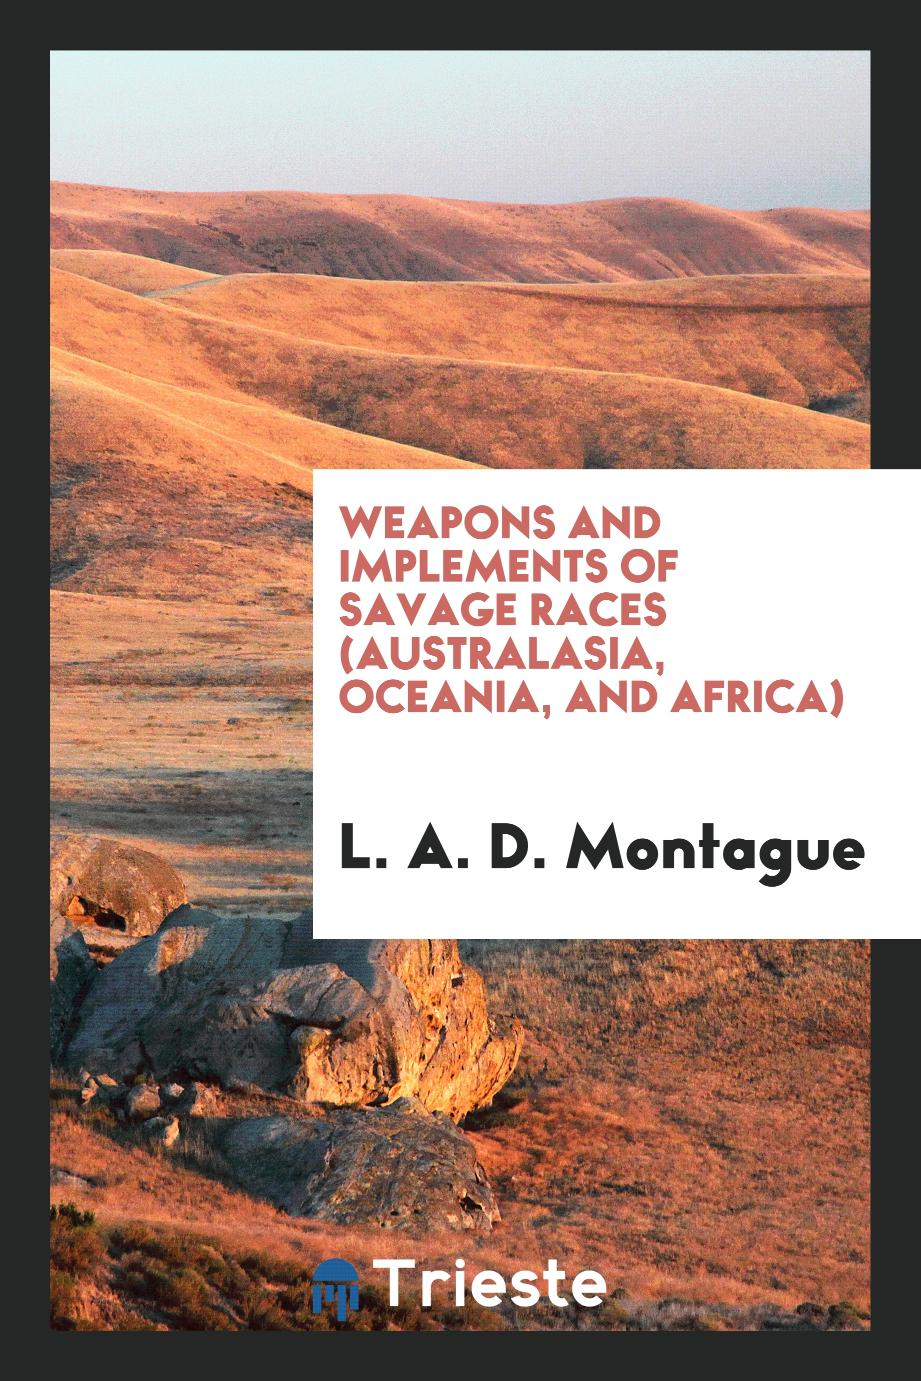 Weapons and implements of savage races (Australasia, Oceania, and Africa)